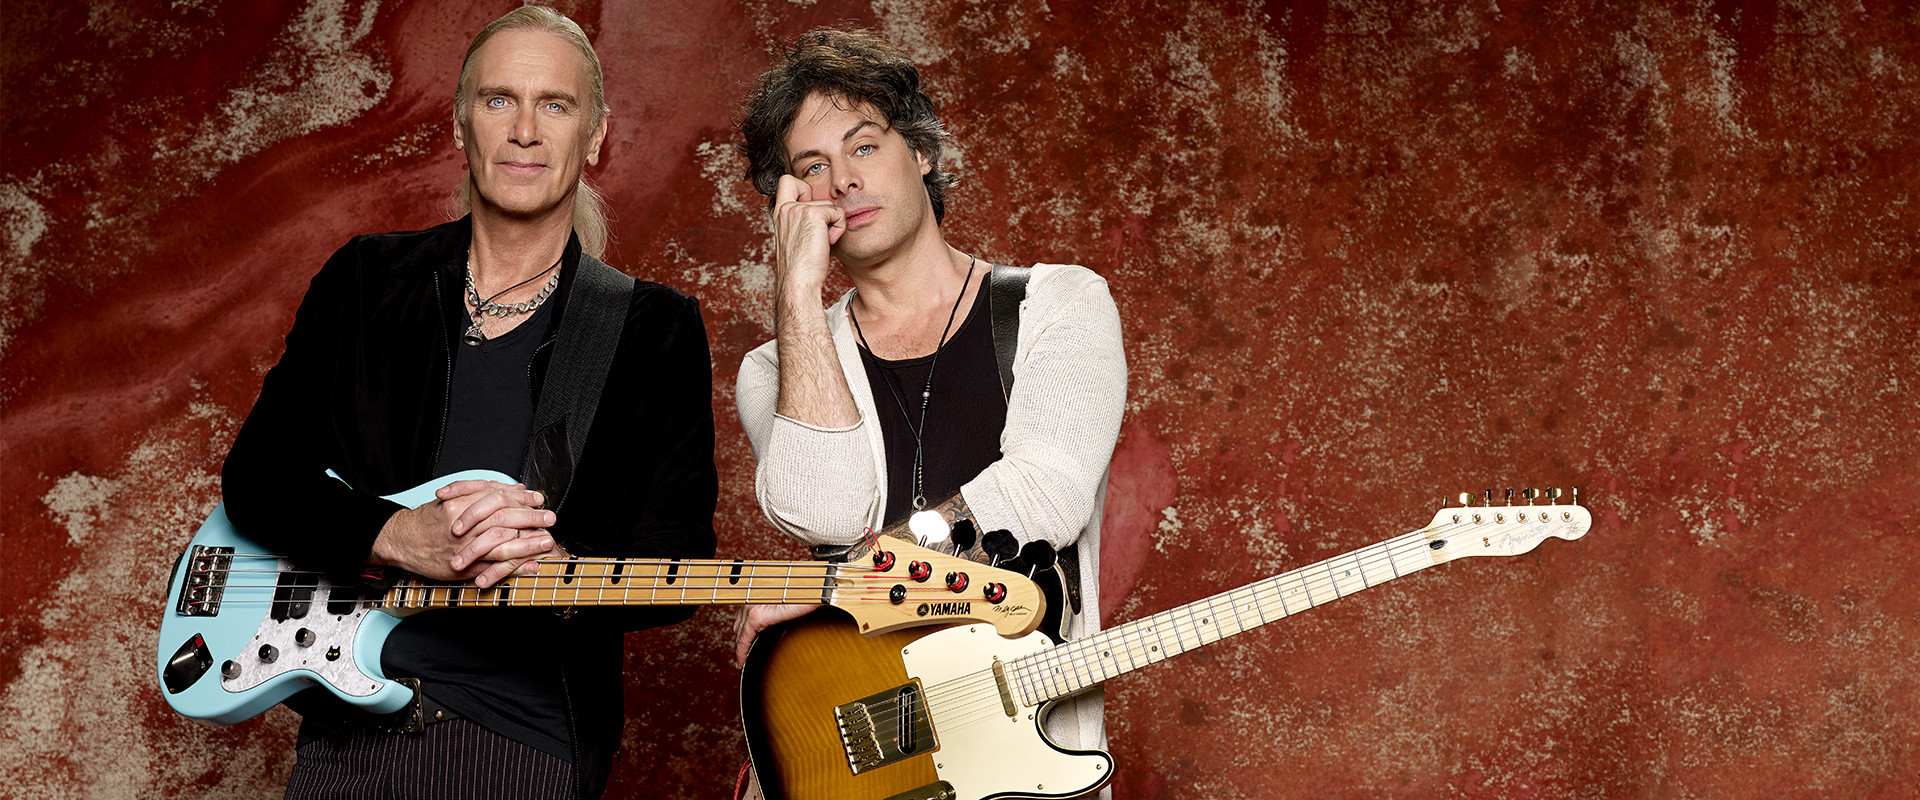 Richie Kotzen & Billy Sheehan for DiMarzio